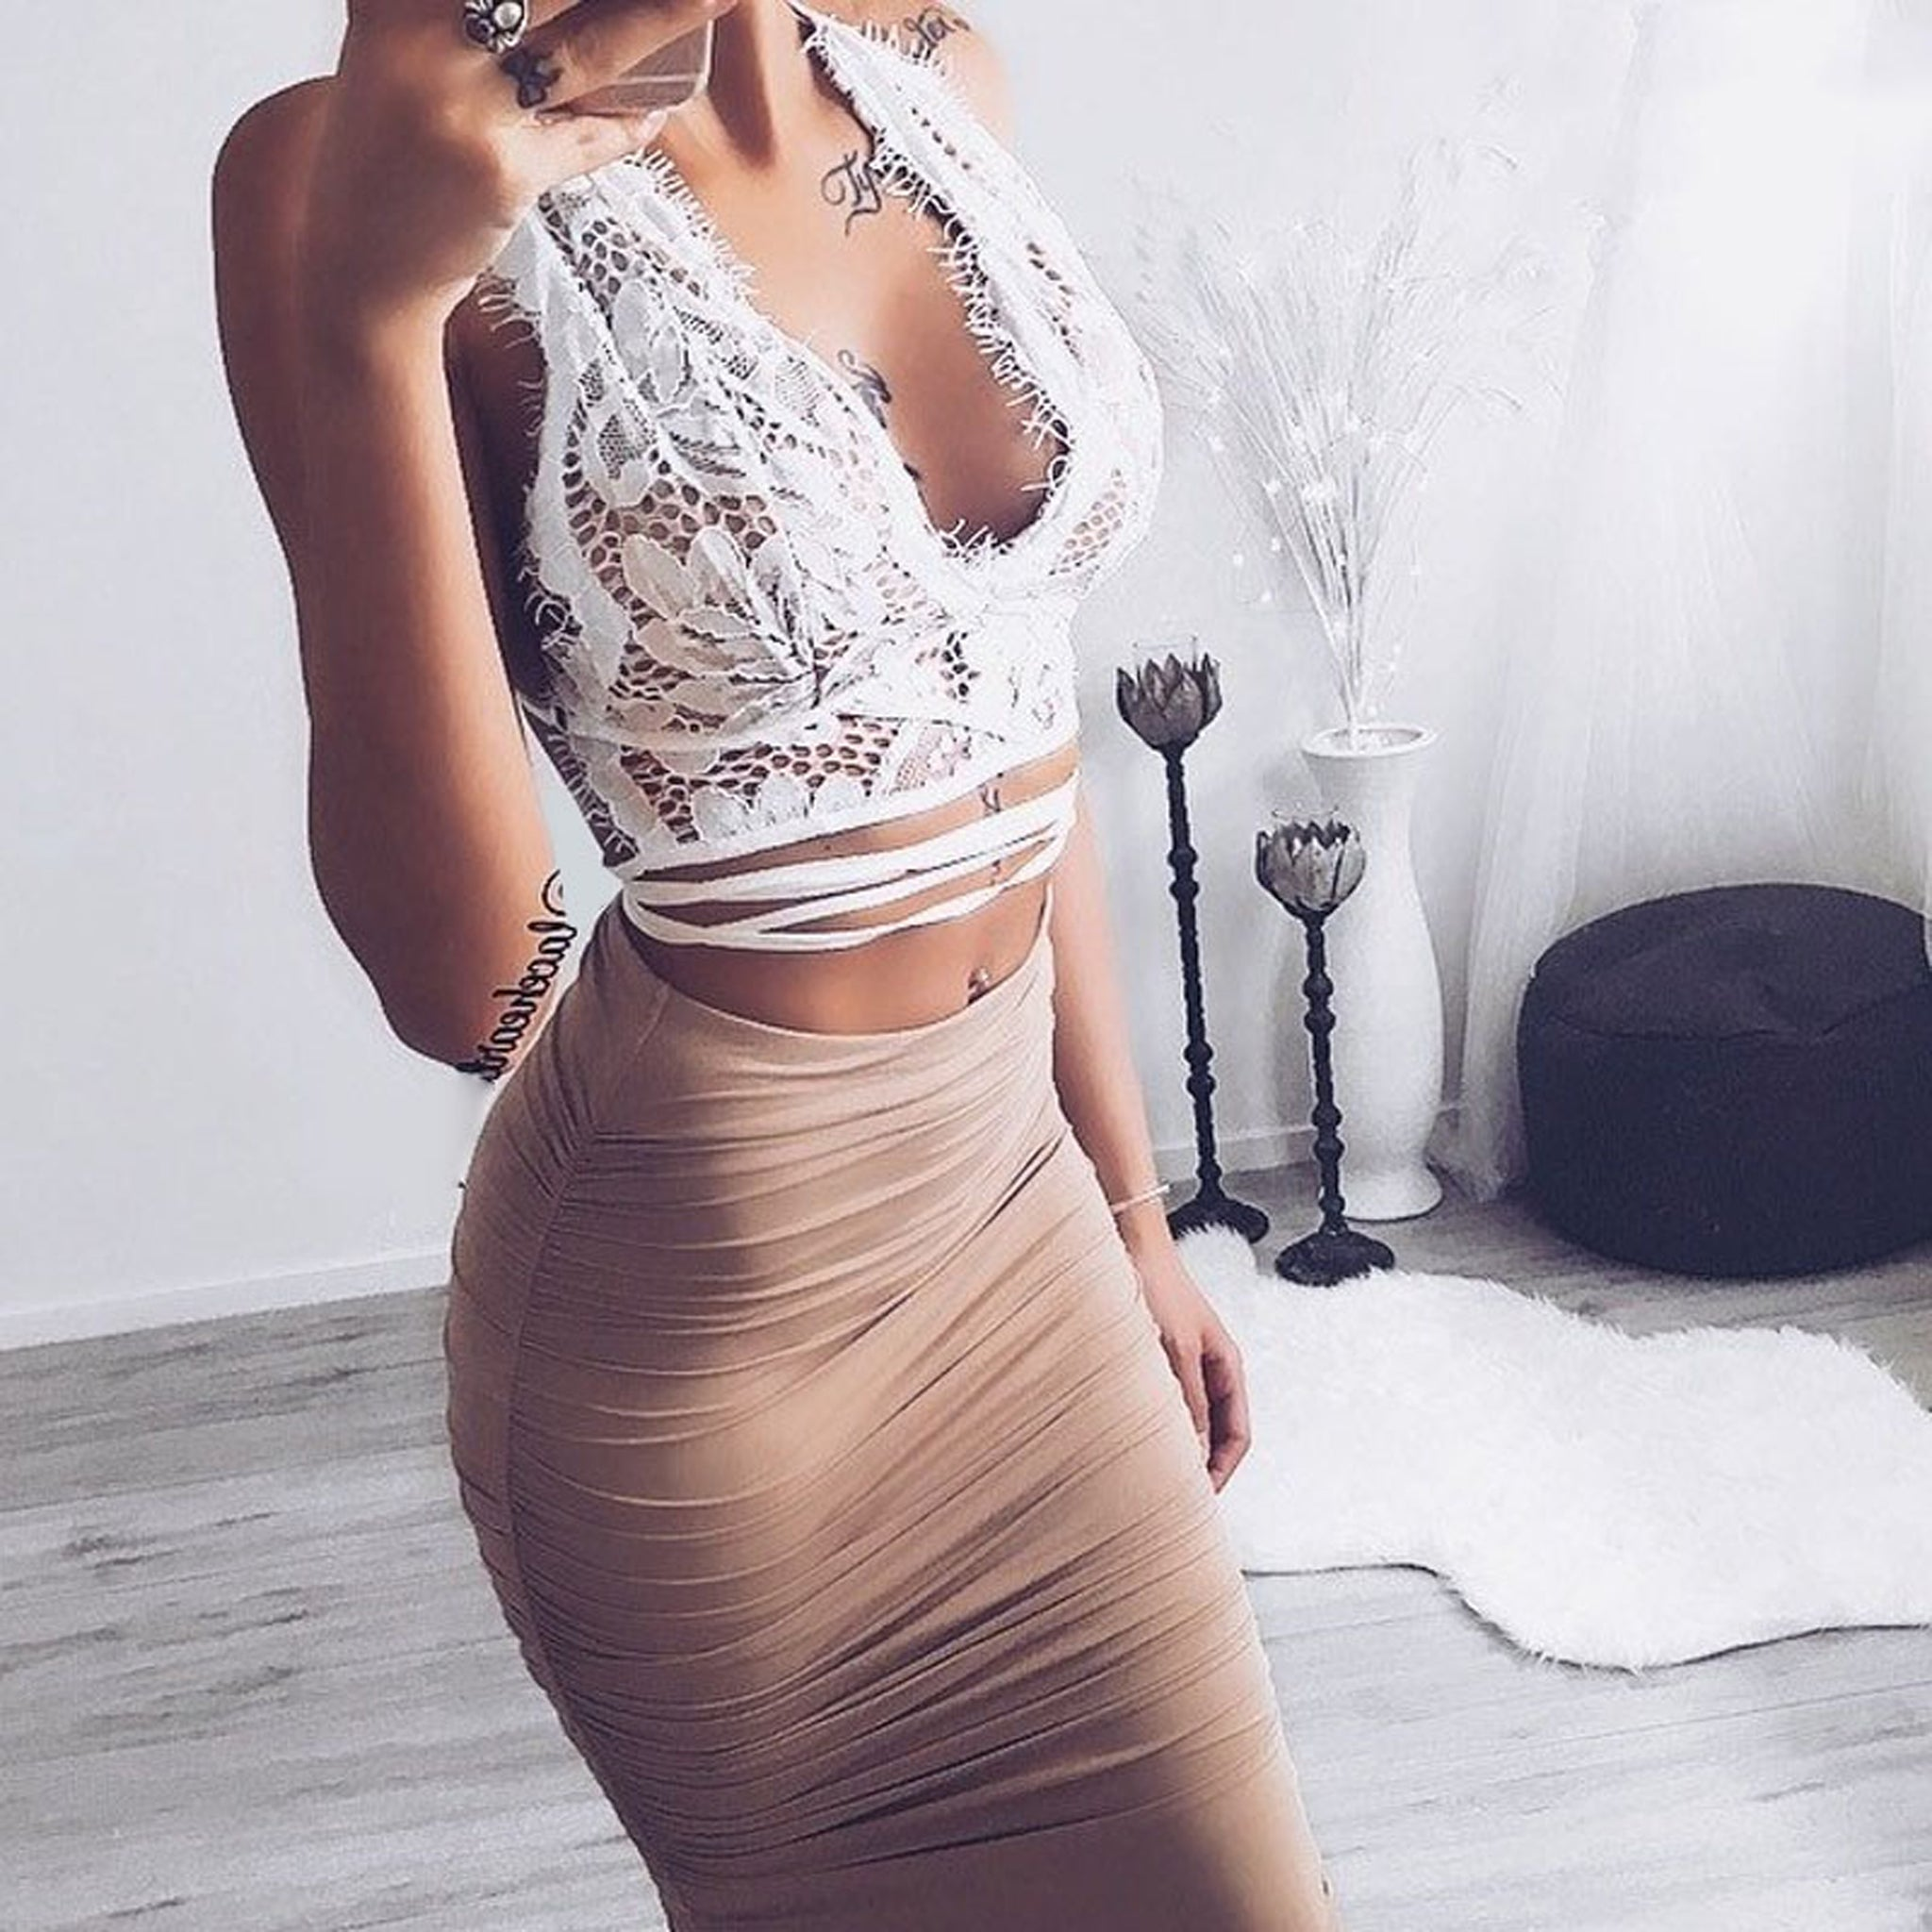 4b93e889cbae8d ... Party Summer Dress Going Out Outfit Ideas for Women Baddie Lace Crop Top  High Waisted Skirt ...